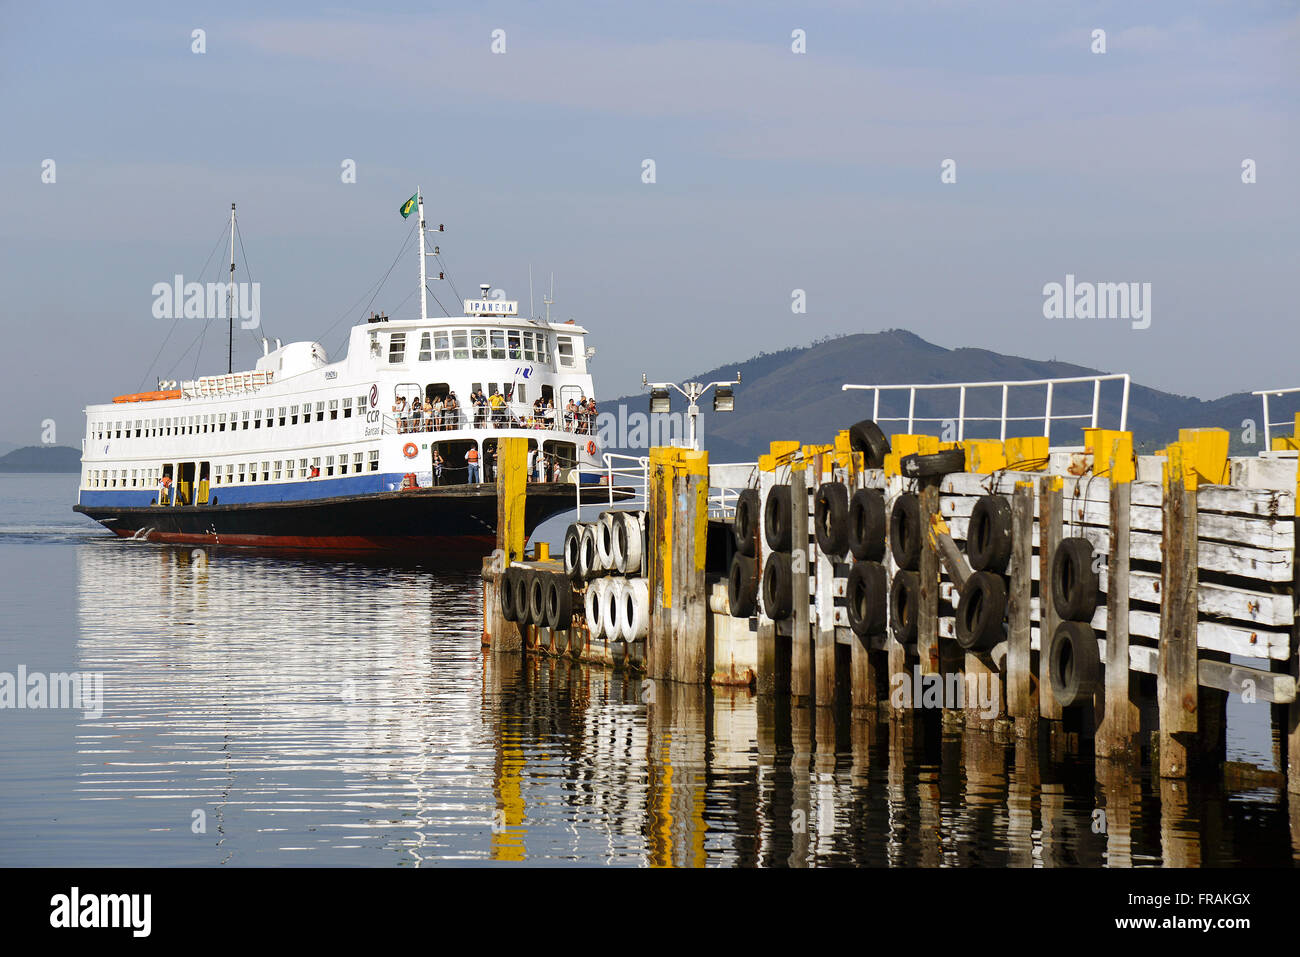 Moored at the pier of the Ferry Station on the island of Paqueta Barca - Baia de Guanabara - Stock Image